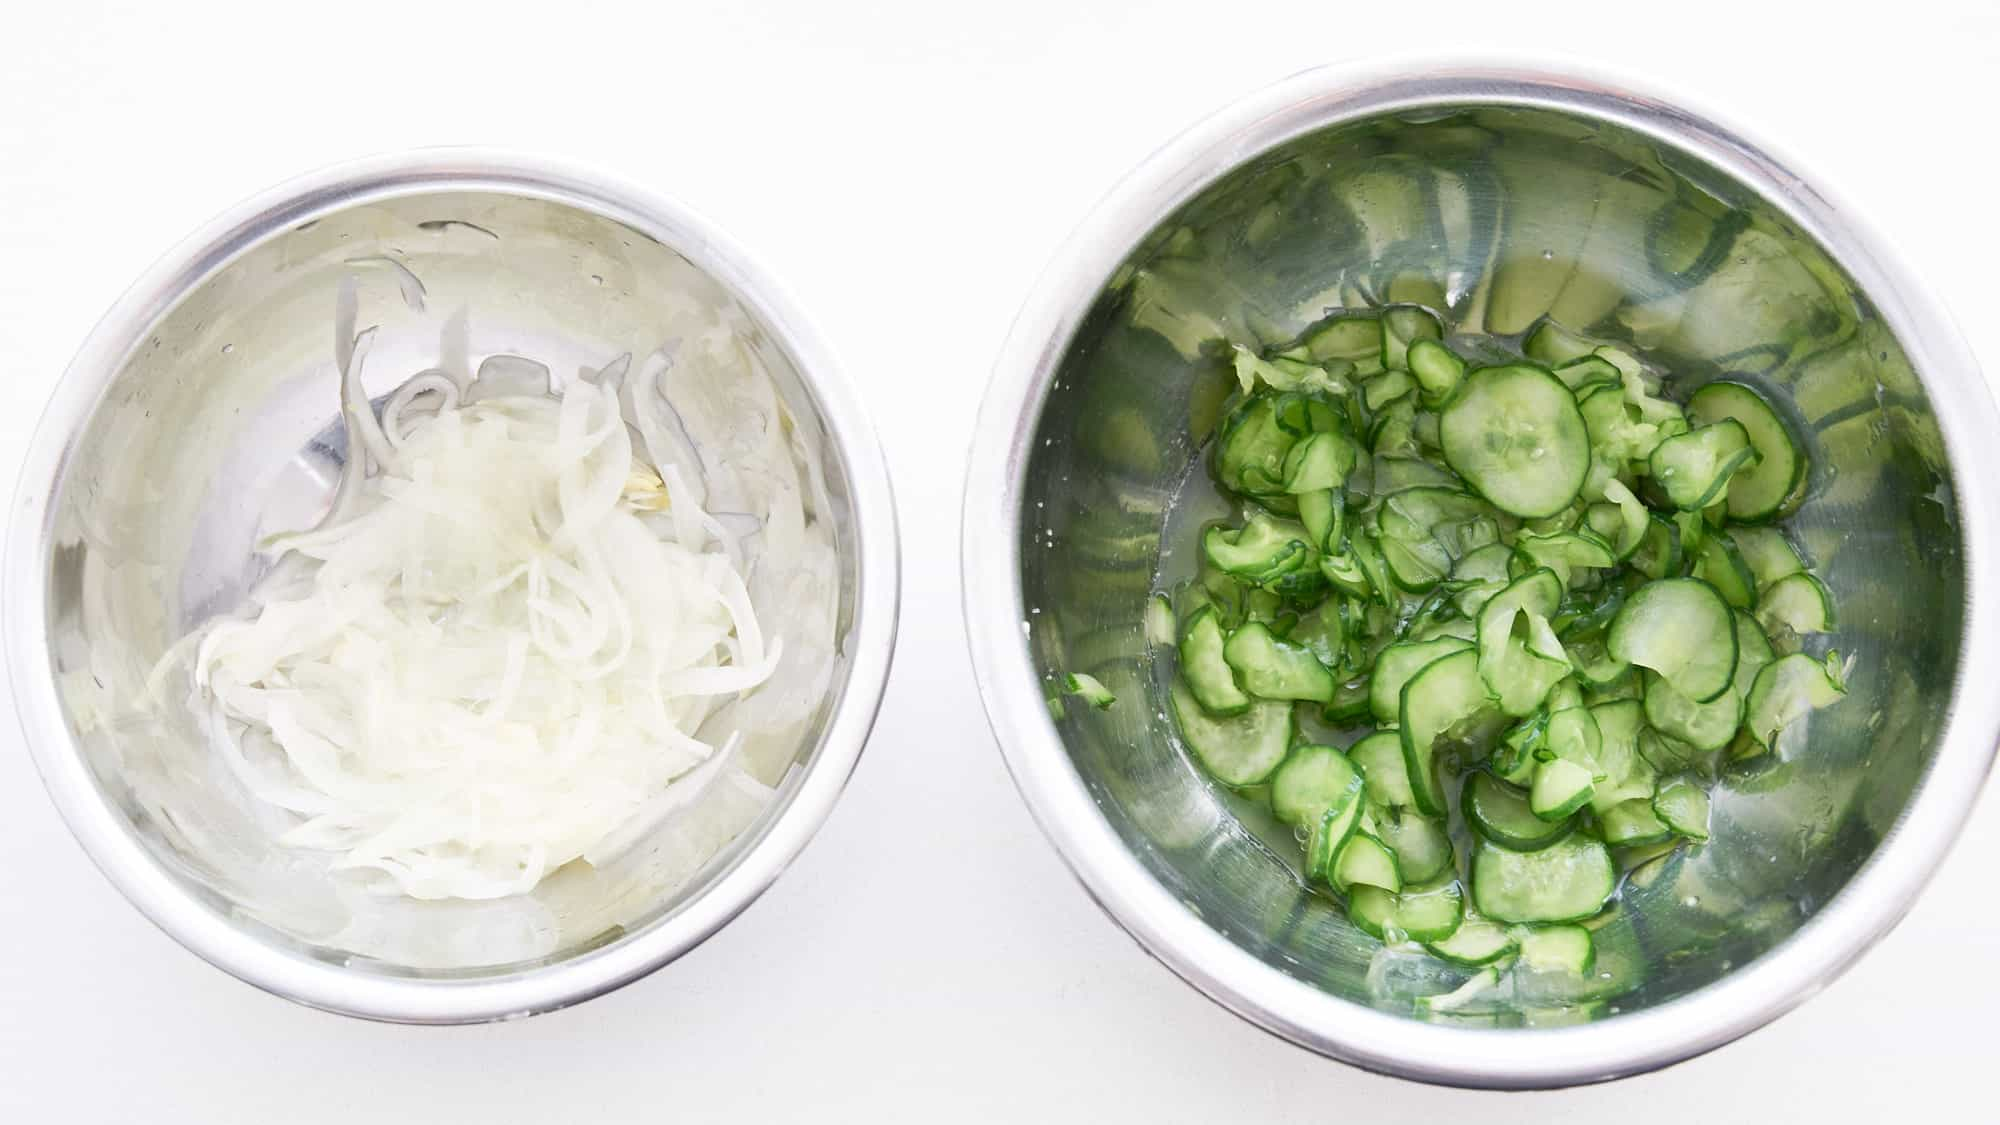 Salted onions and cucumbers in stainless steel bowls on a white counter for making Japanese style potato salad.